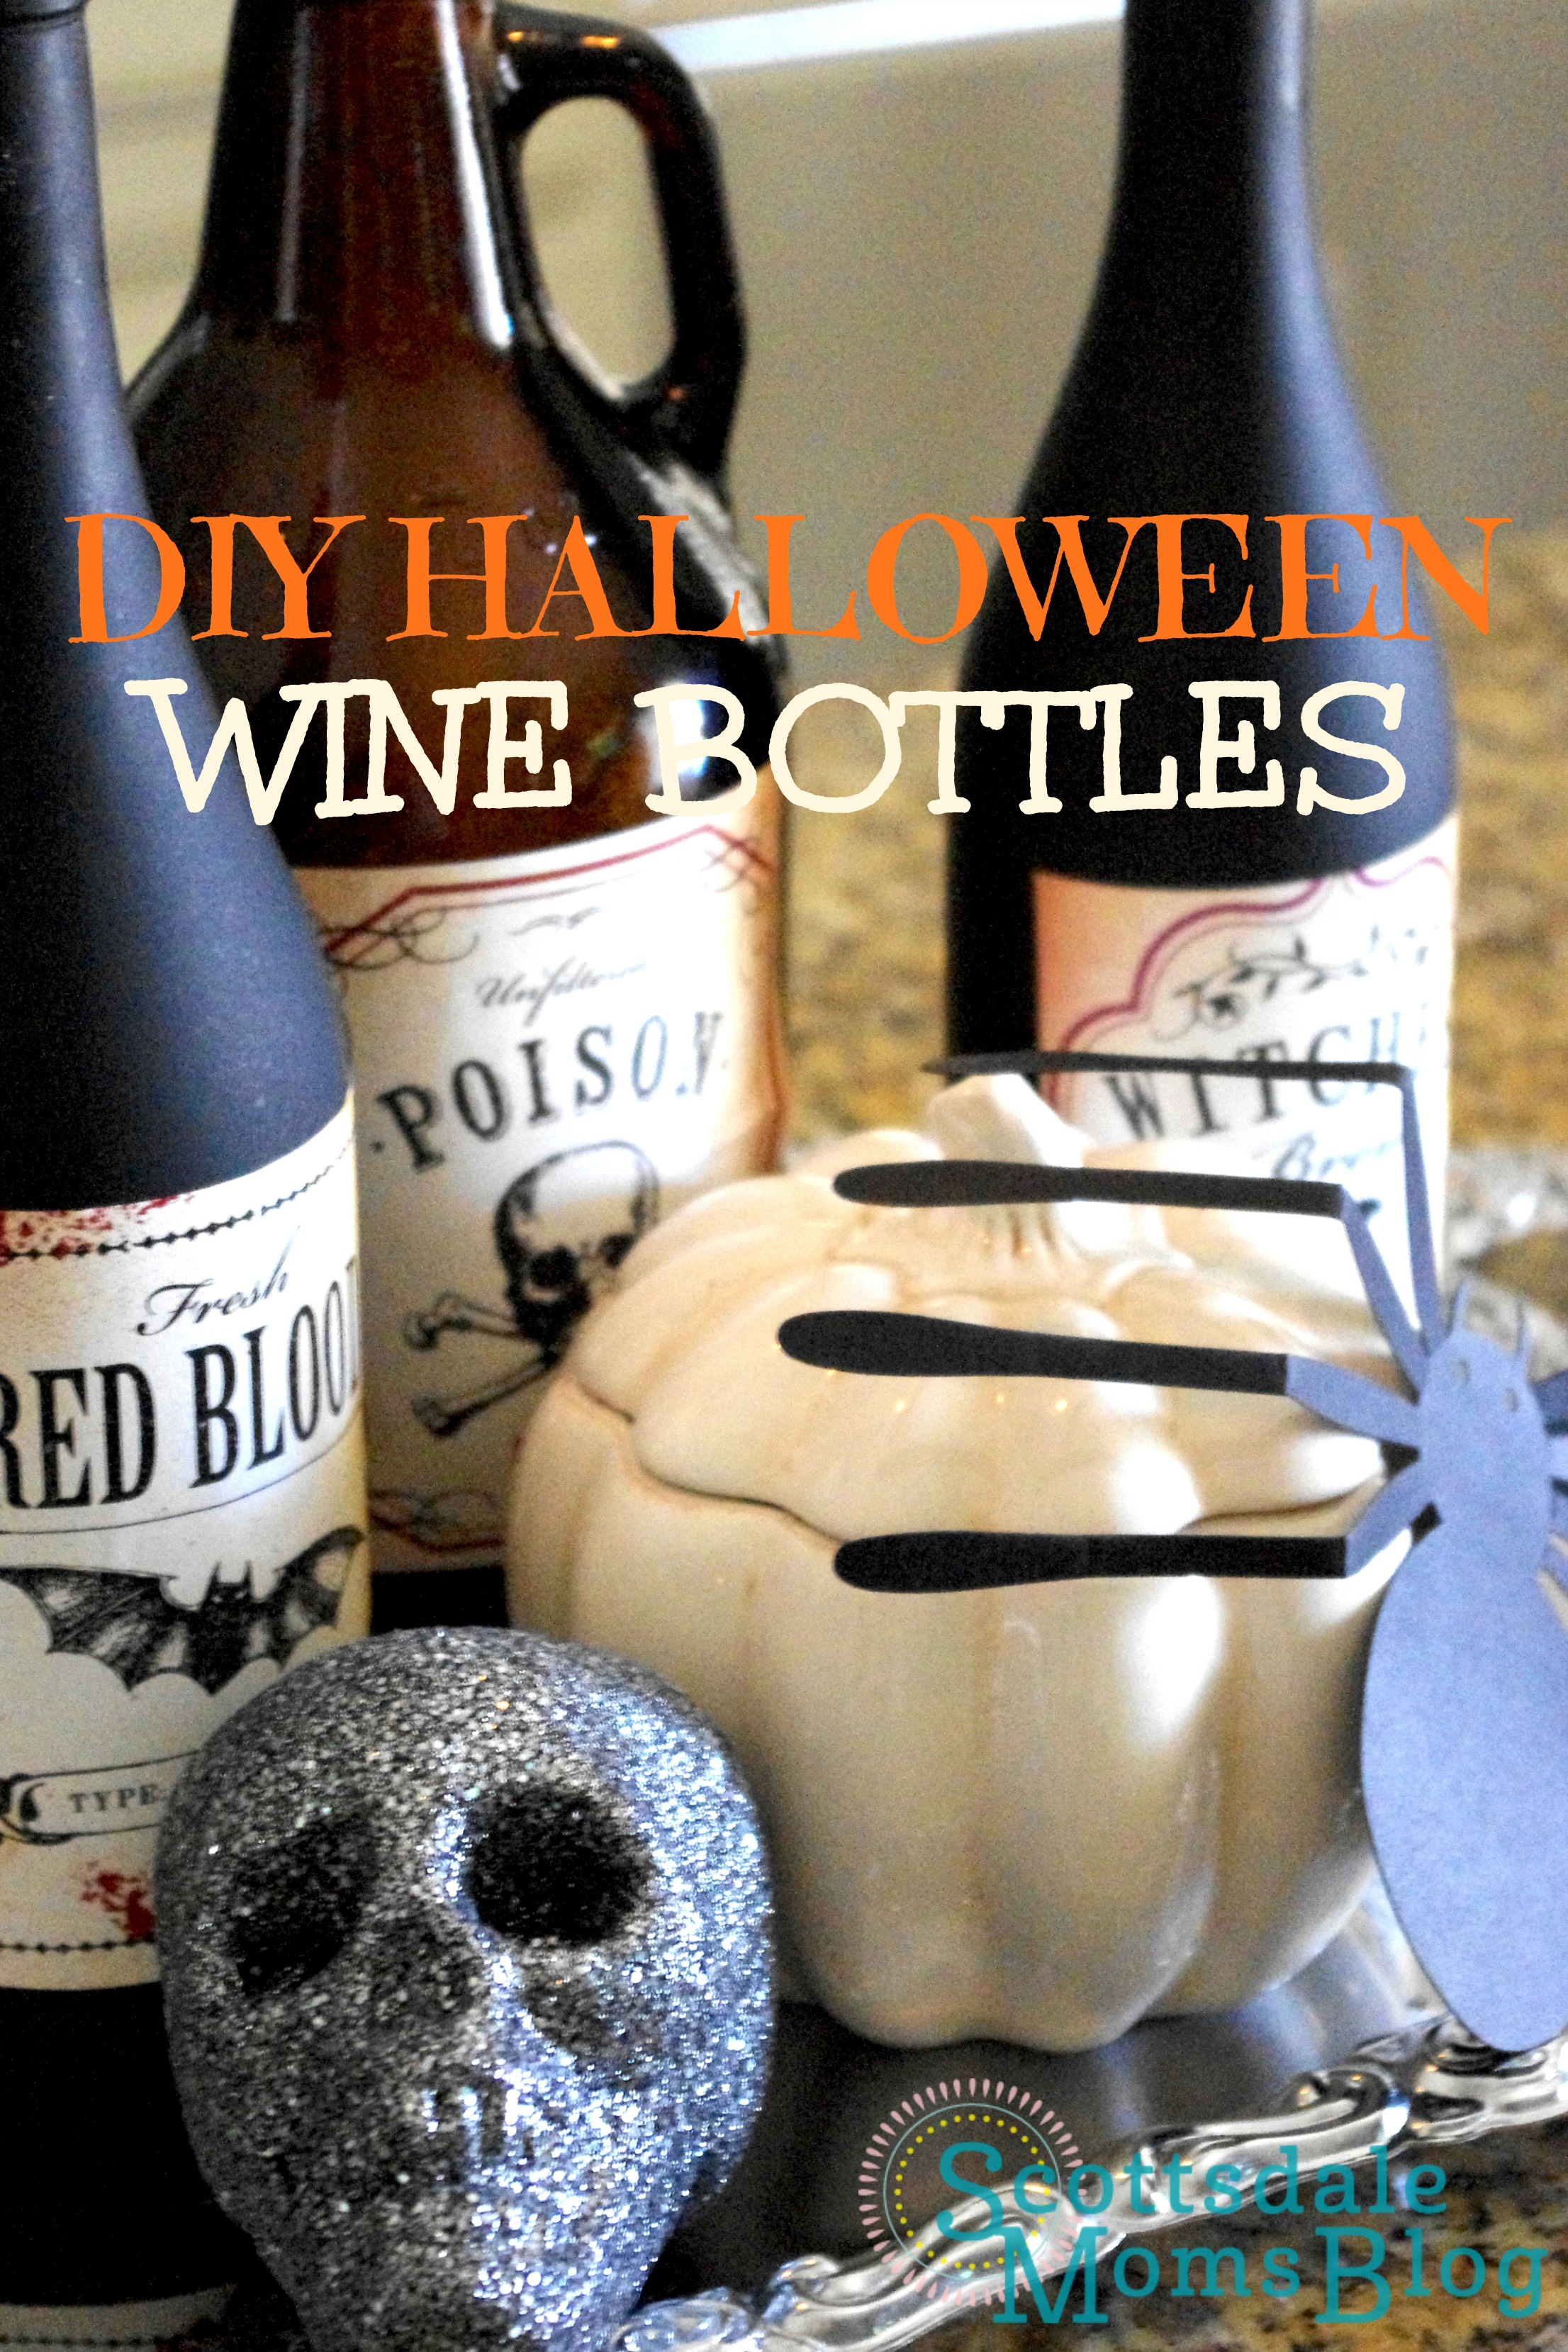 diy wine bottle graphic - When To Start Decorating For Halloween